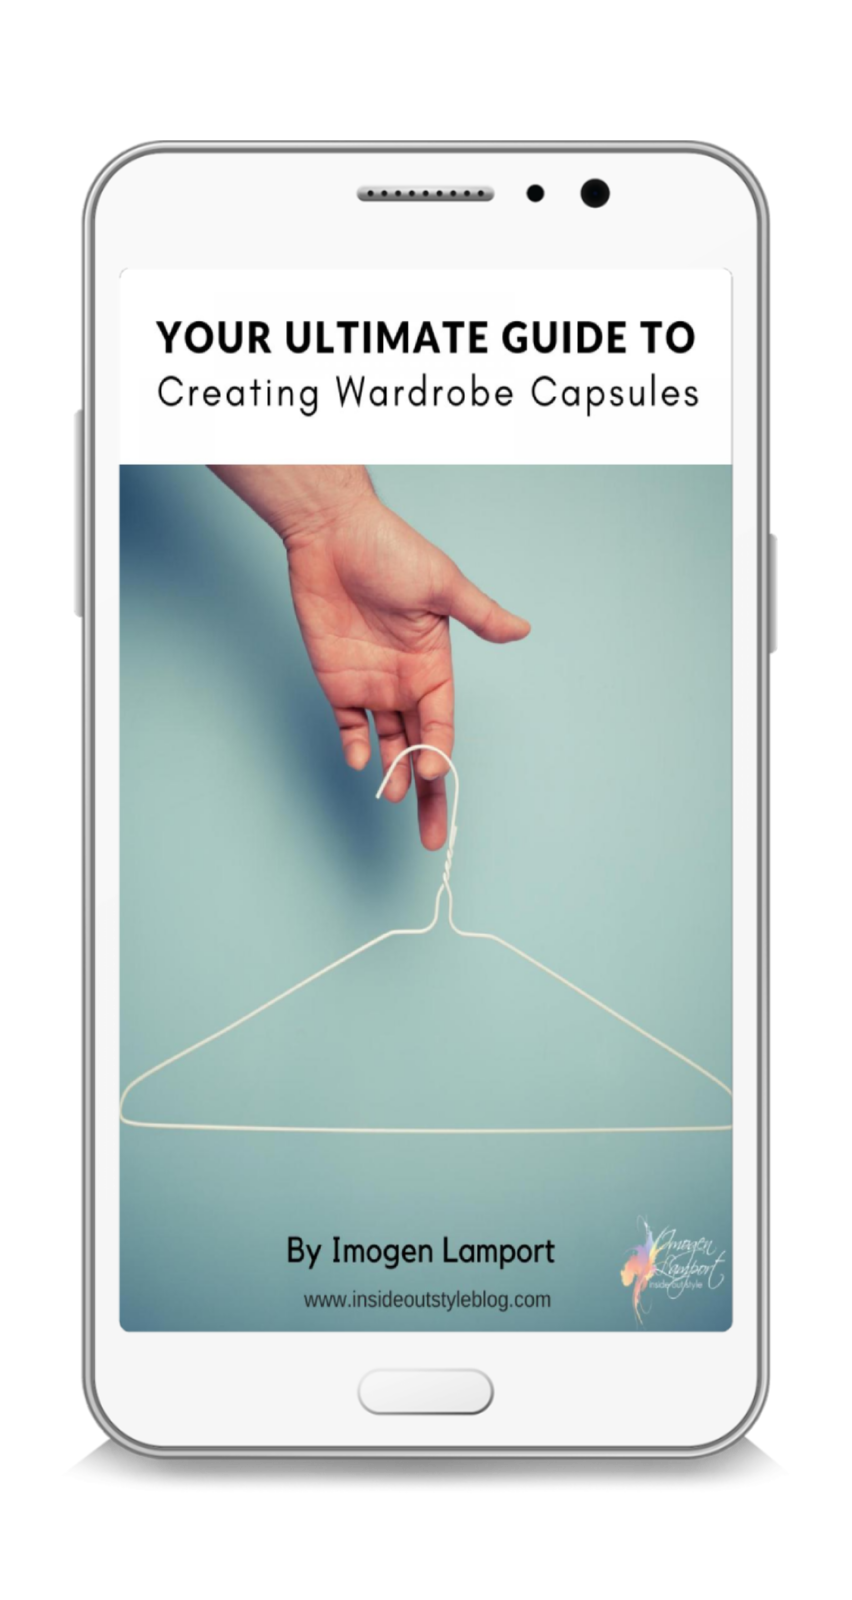 The Ultimate Guide To Creating Wardrobe Capsules